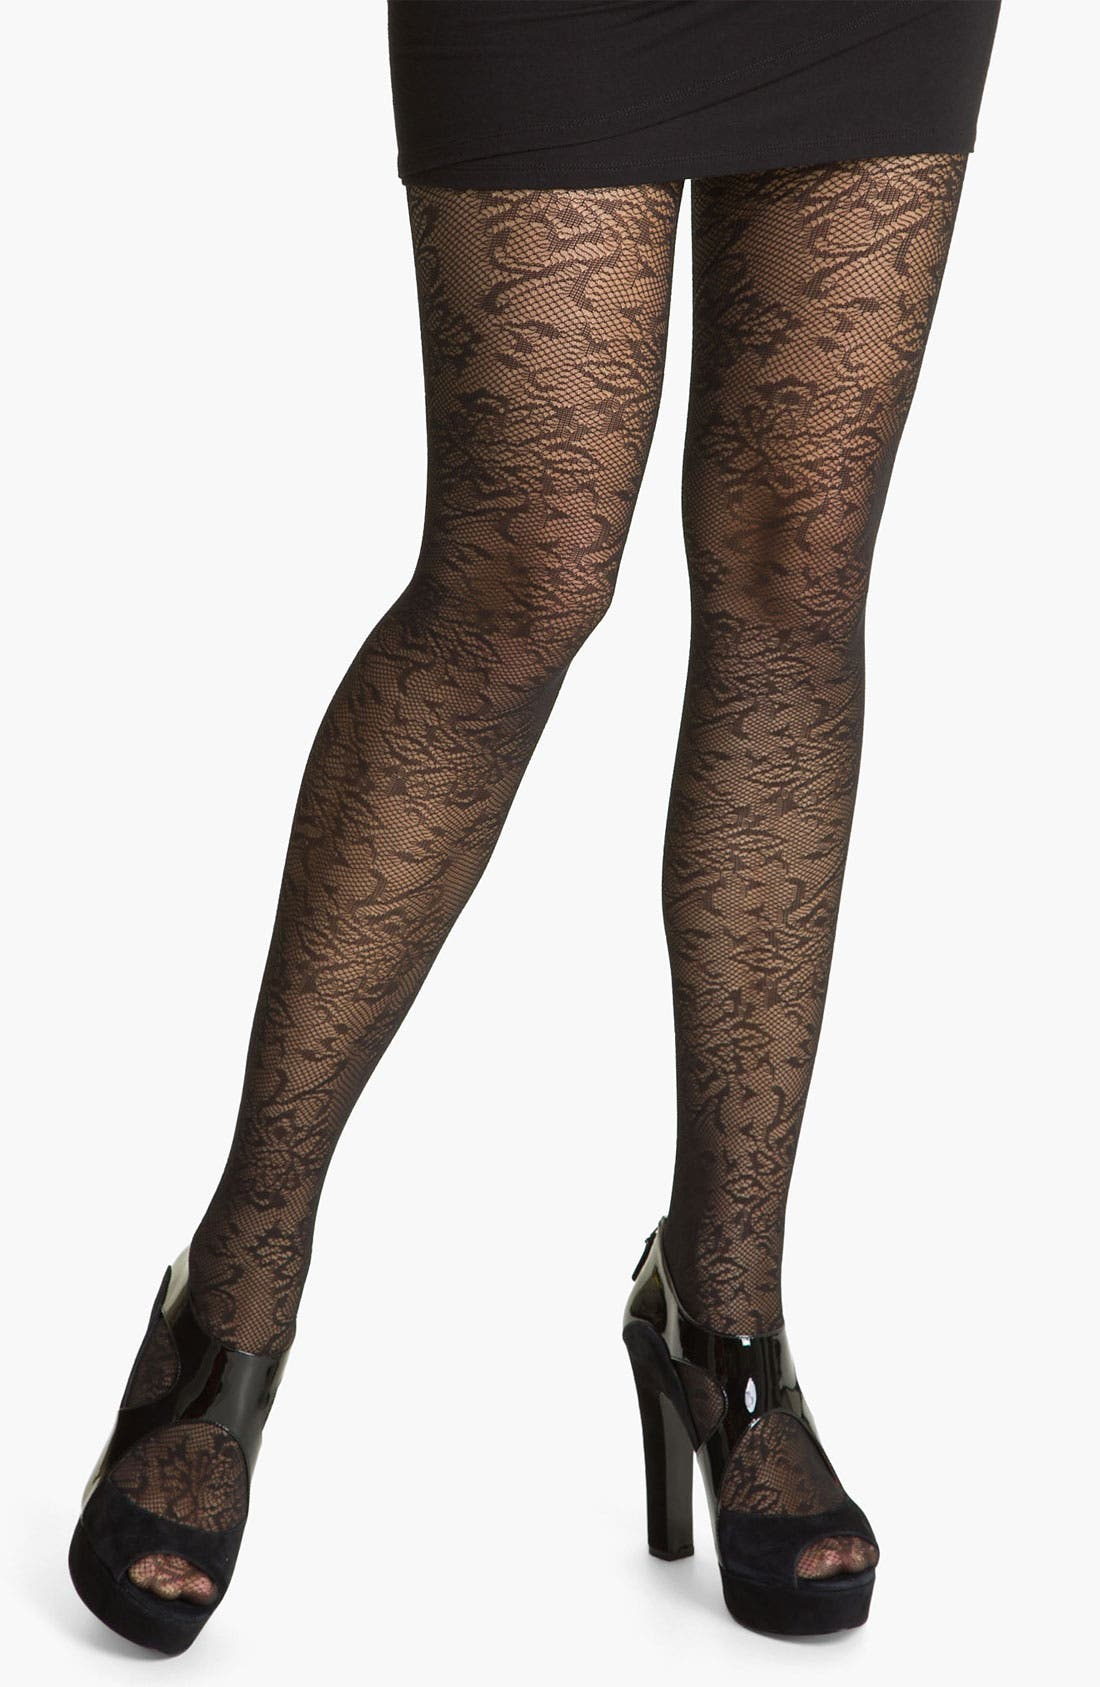 Main Image - Nordstrom Net Floral Tights